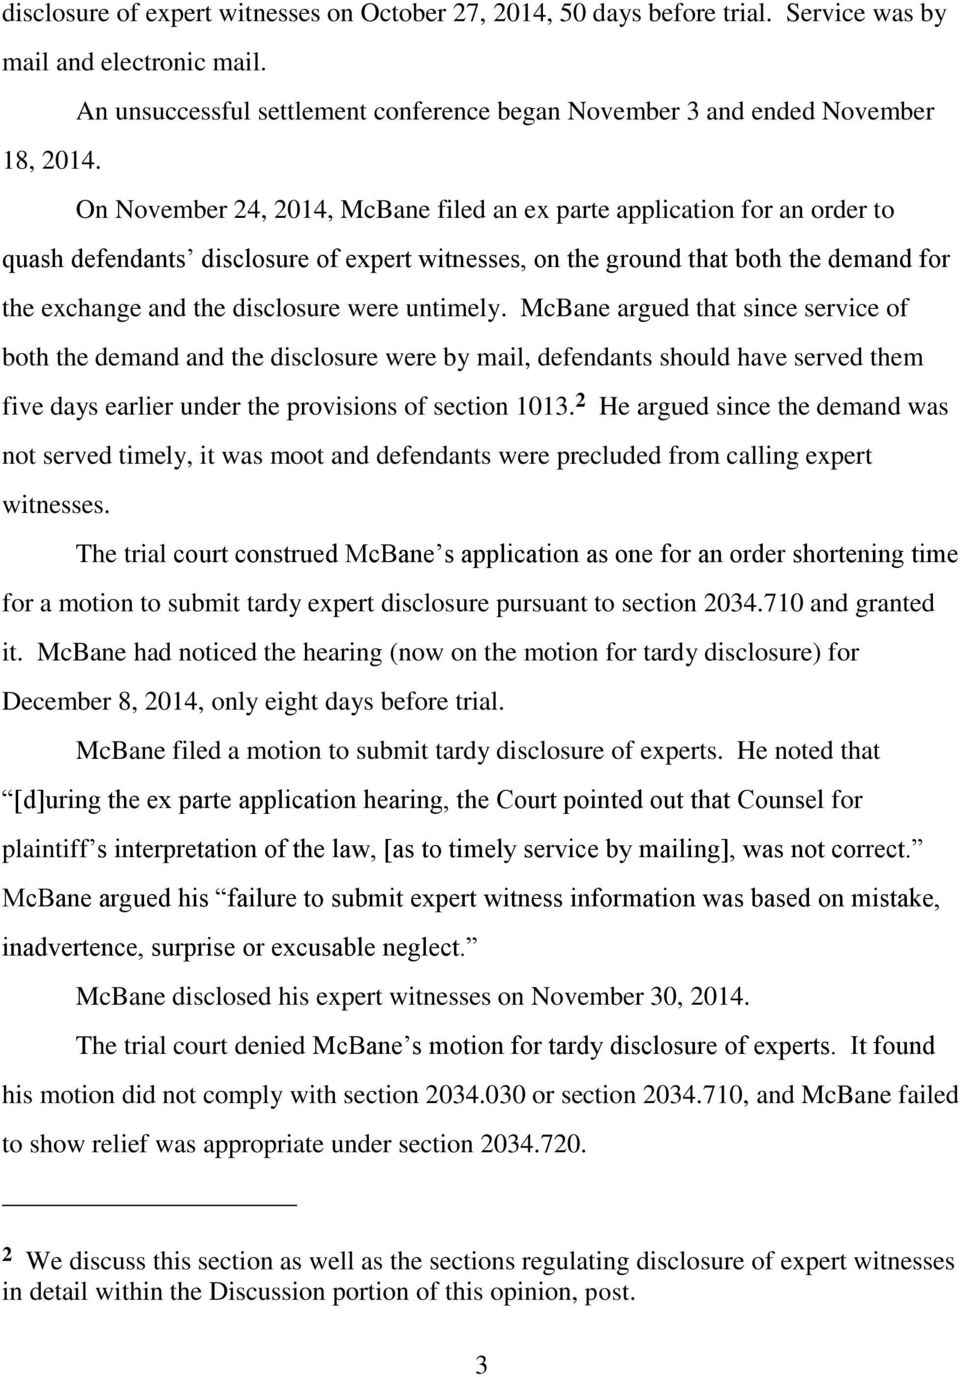 untimely. McBane argued that since service of both the demand and the disclosure were by mail, defendants should have served them five days earlier under the provisions of section 1013.